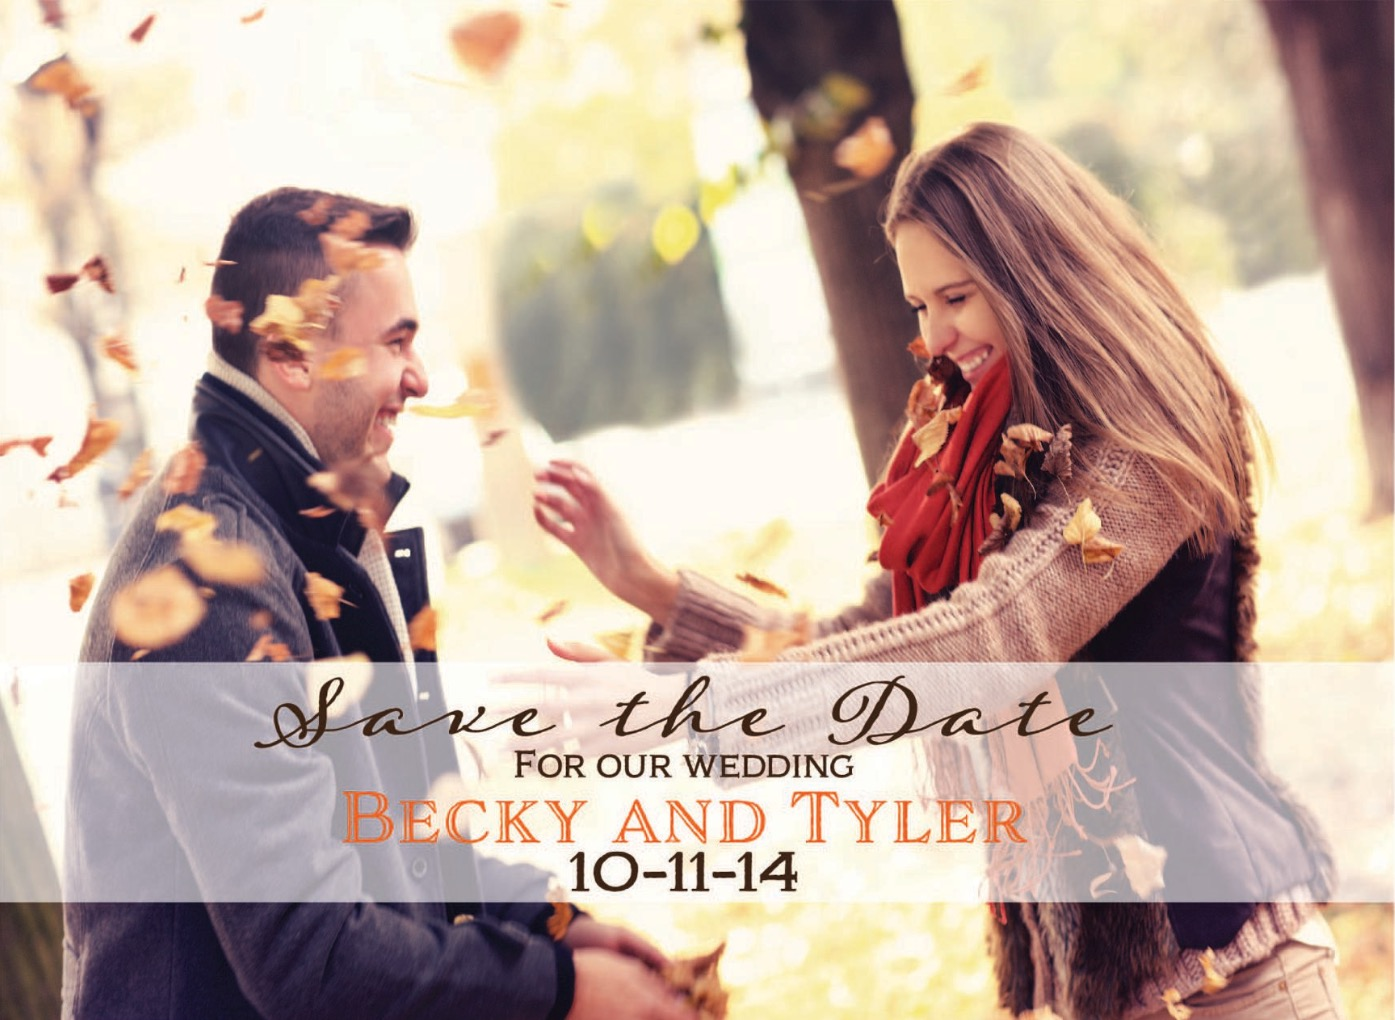 custom-photo-save-the-date-postcard-by-Lucky-Invitations